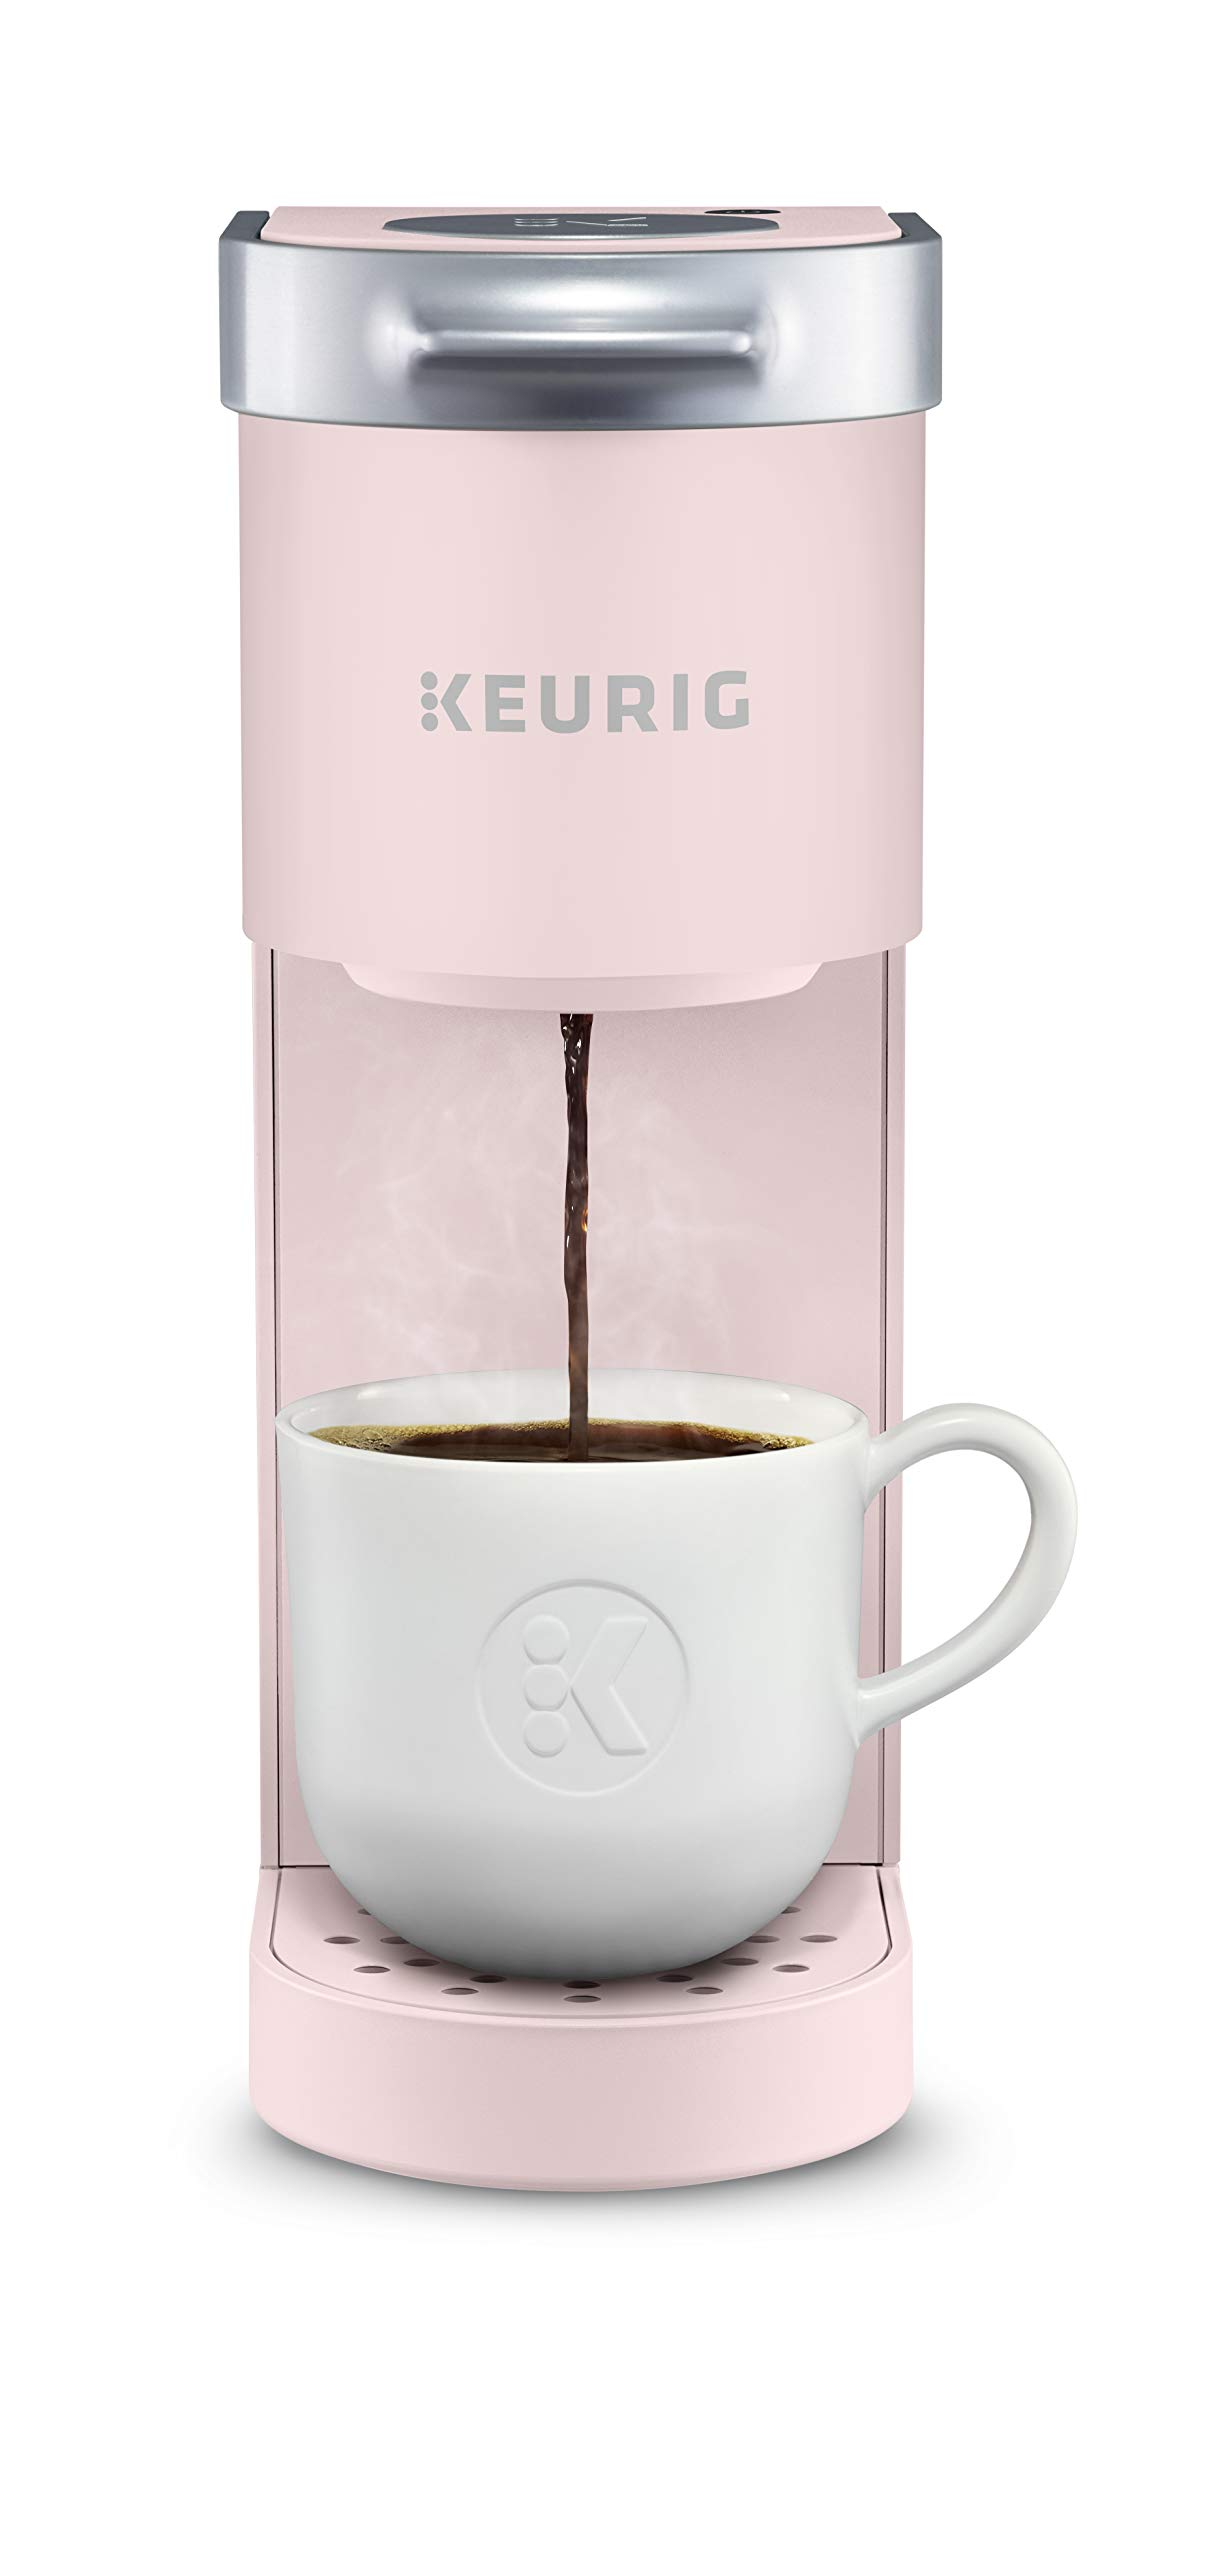 Keurig Mini Maker Single Serve K-Cup Pod Coffee Brewer